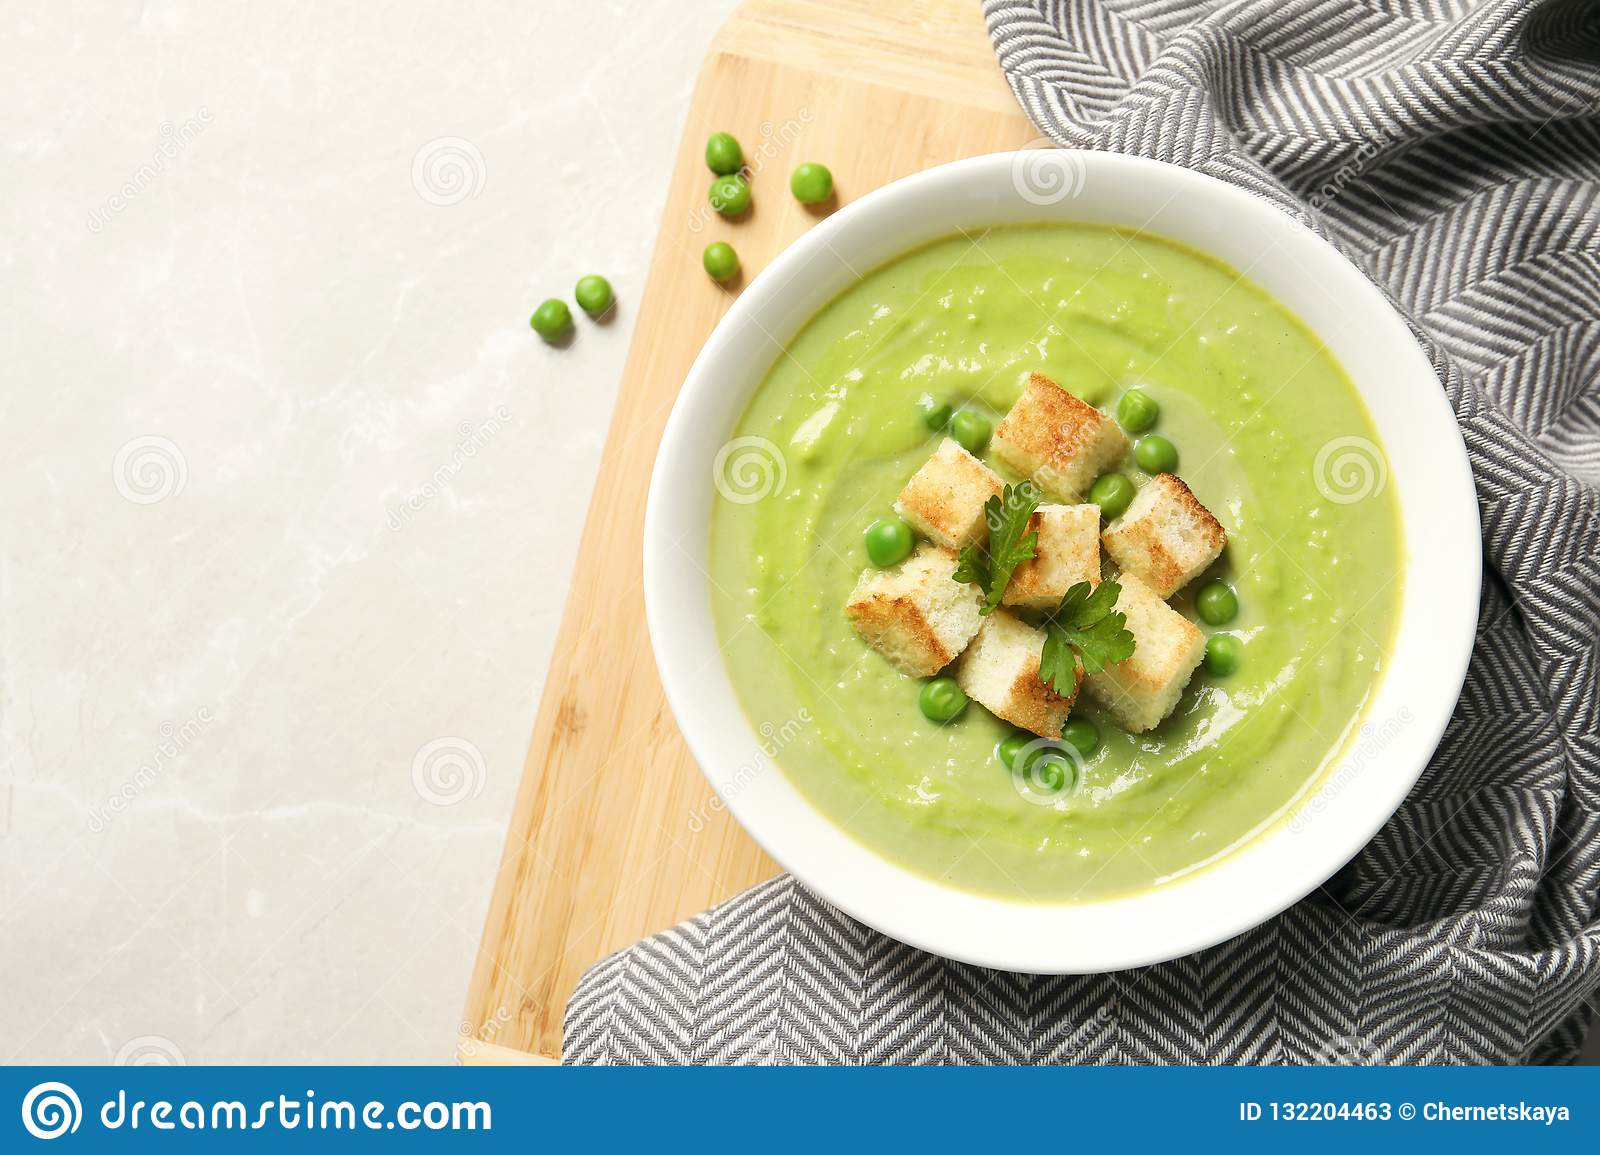 Flat lay composition with fresh vegetable detox soup made of green peas in dish and space for text